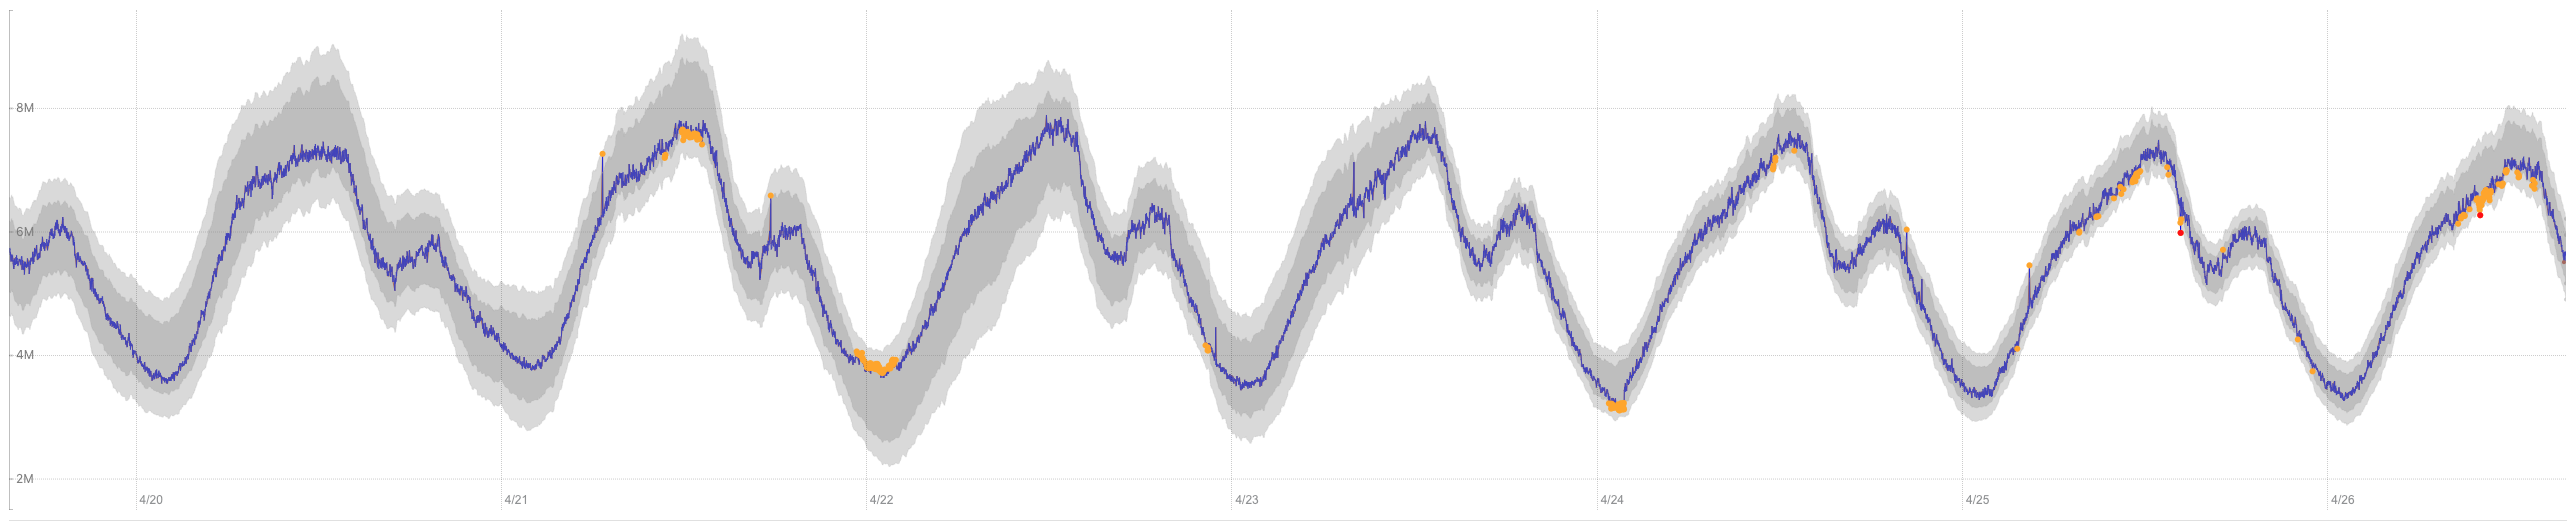 Building a real-time anomaly detection system for time series at